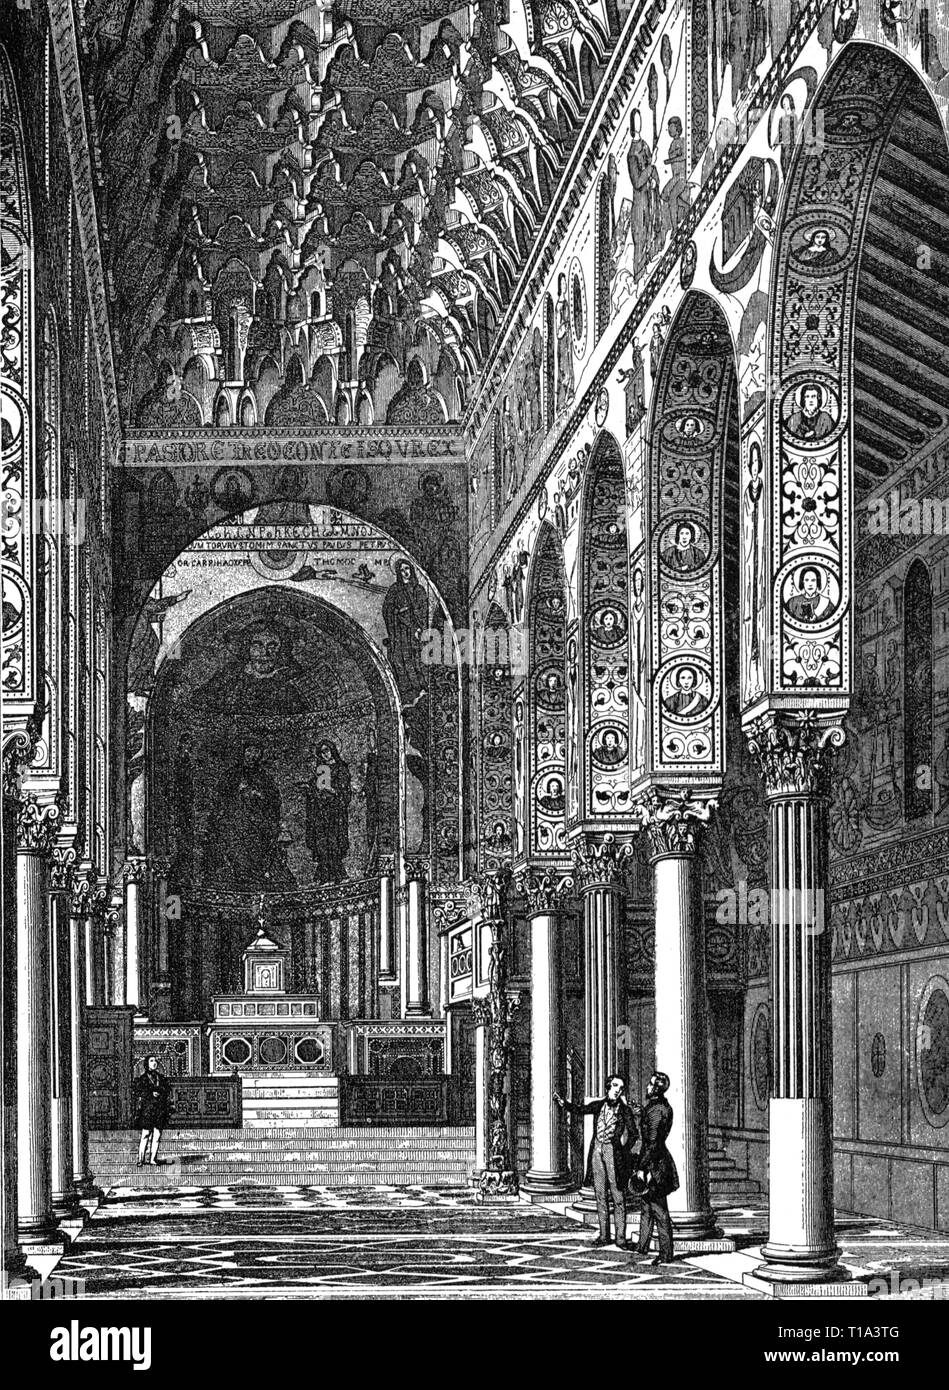 geography / travel historic, Italy, cities and communities, Palermo, castles, Palazzo Reale, interior view, Cappella Palatina, wood engraving, after Jules Gailhabaud, later 19th century, Artist's Copyright has not to be cleared - Stock Image